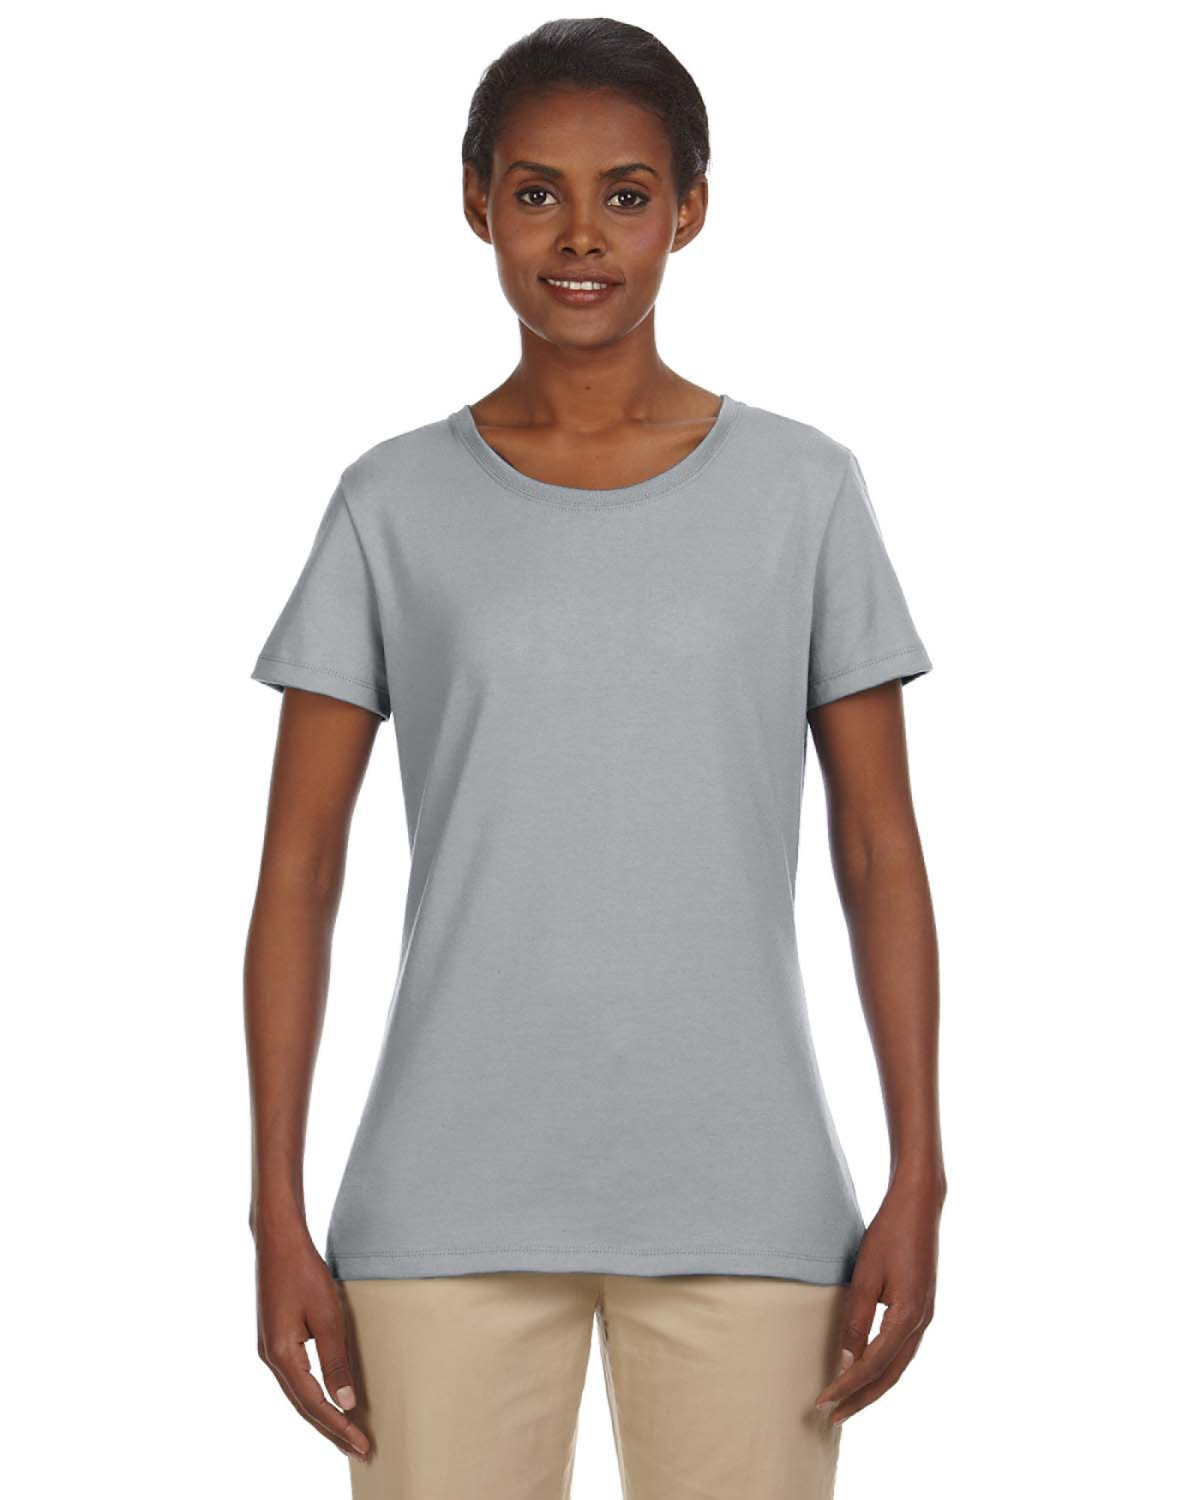 Ladies' 5.6 oz. DRI-POWER® ACTIVE T-Shirt